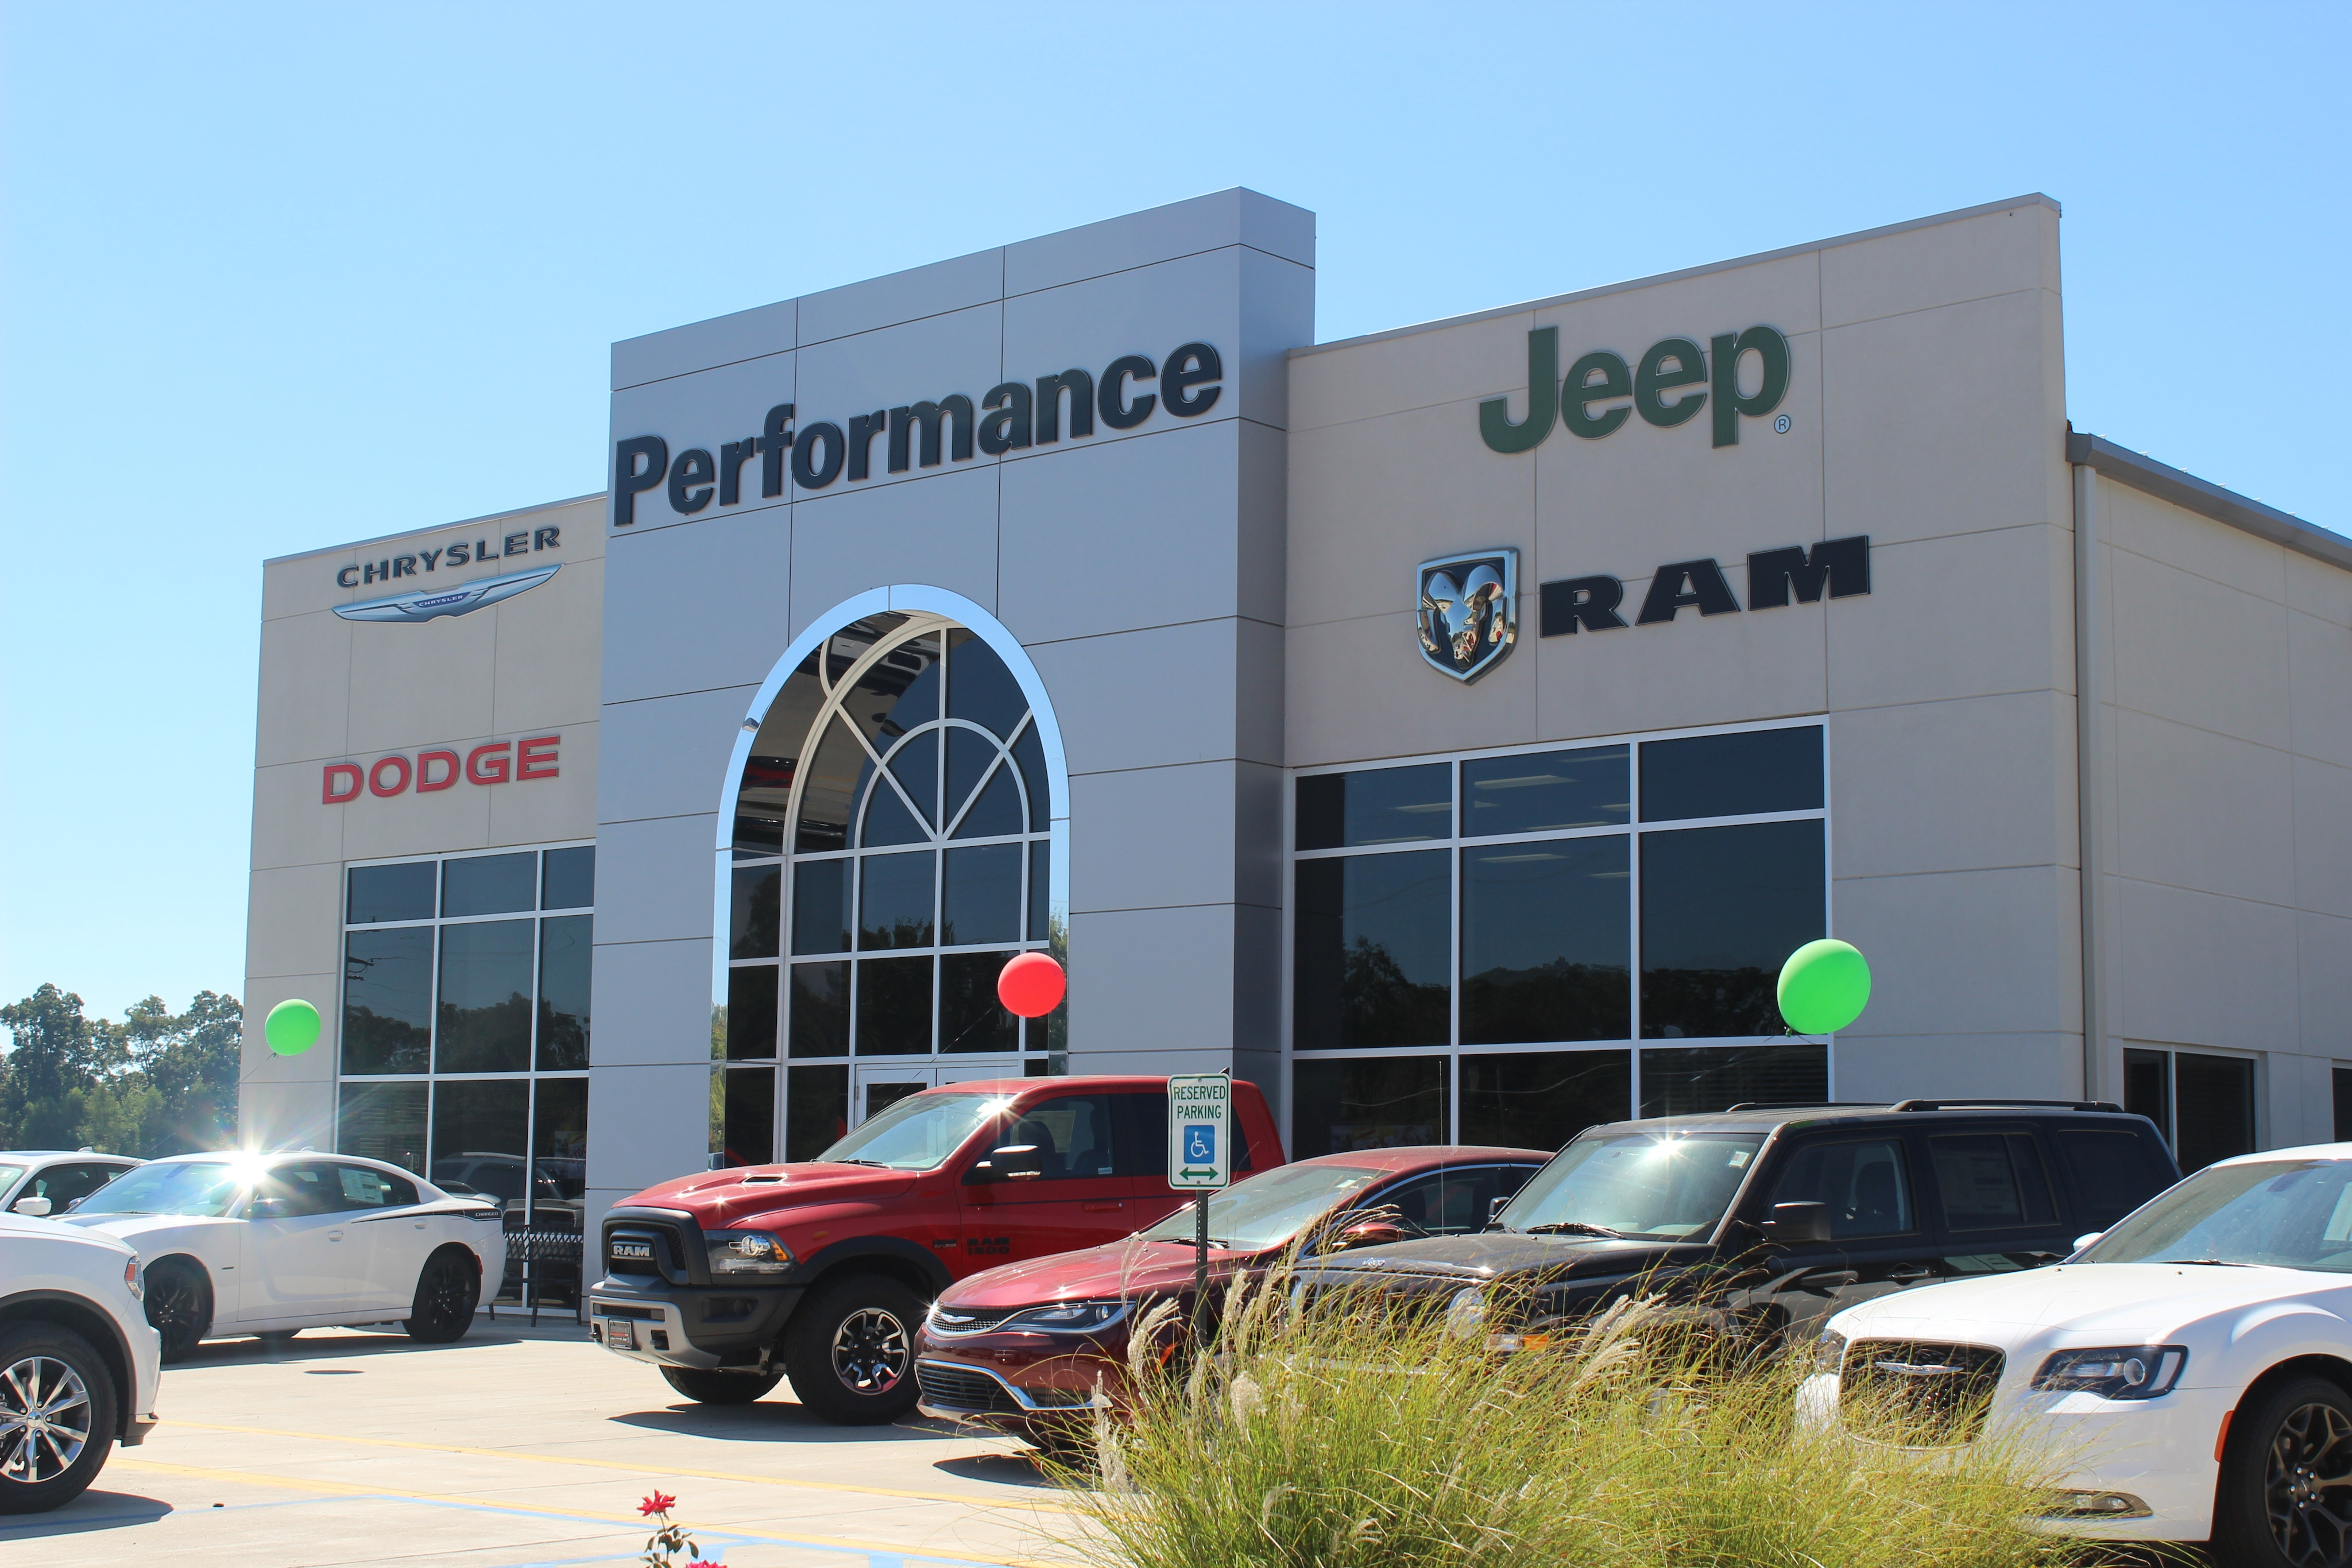 2019 Dodge Journey Incentives, Specials & Offers in Ferriday LA